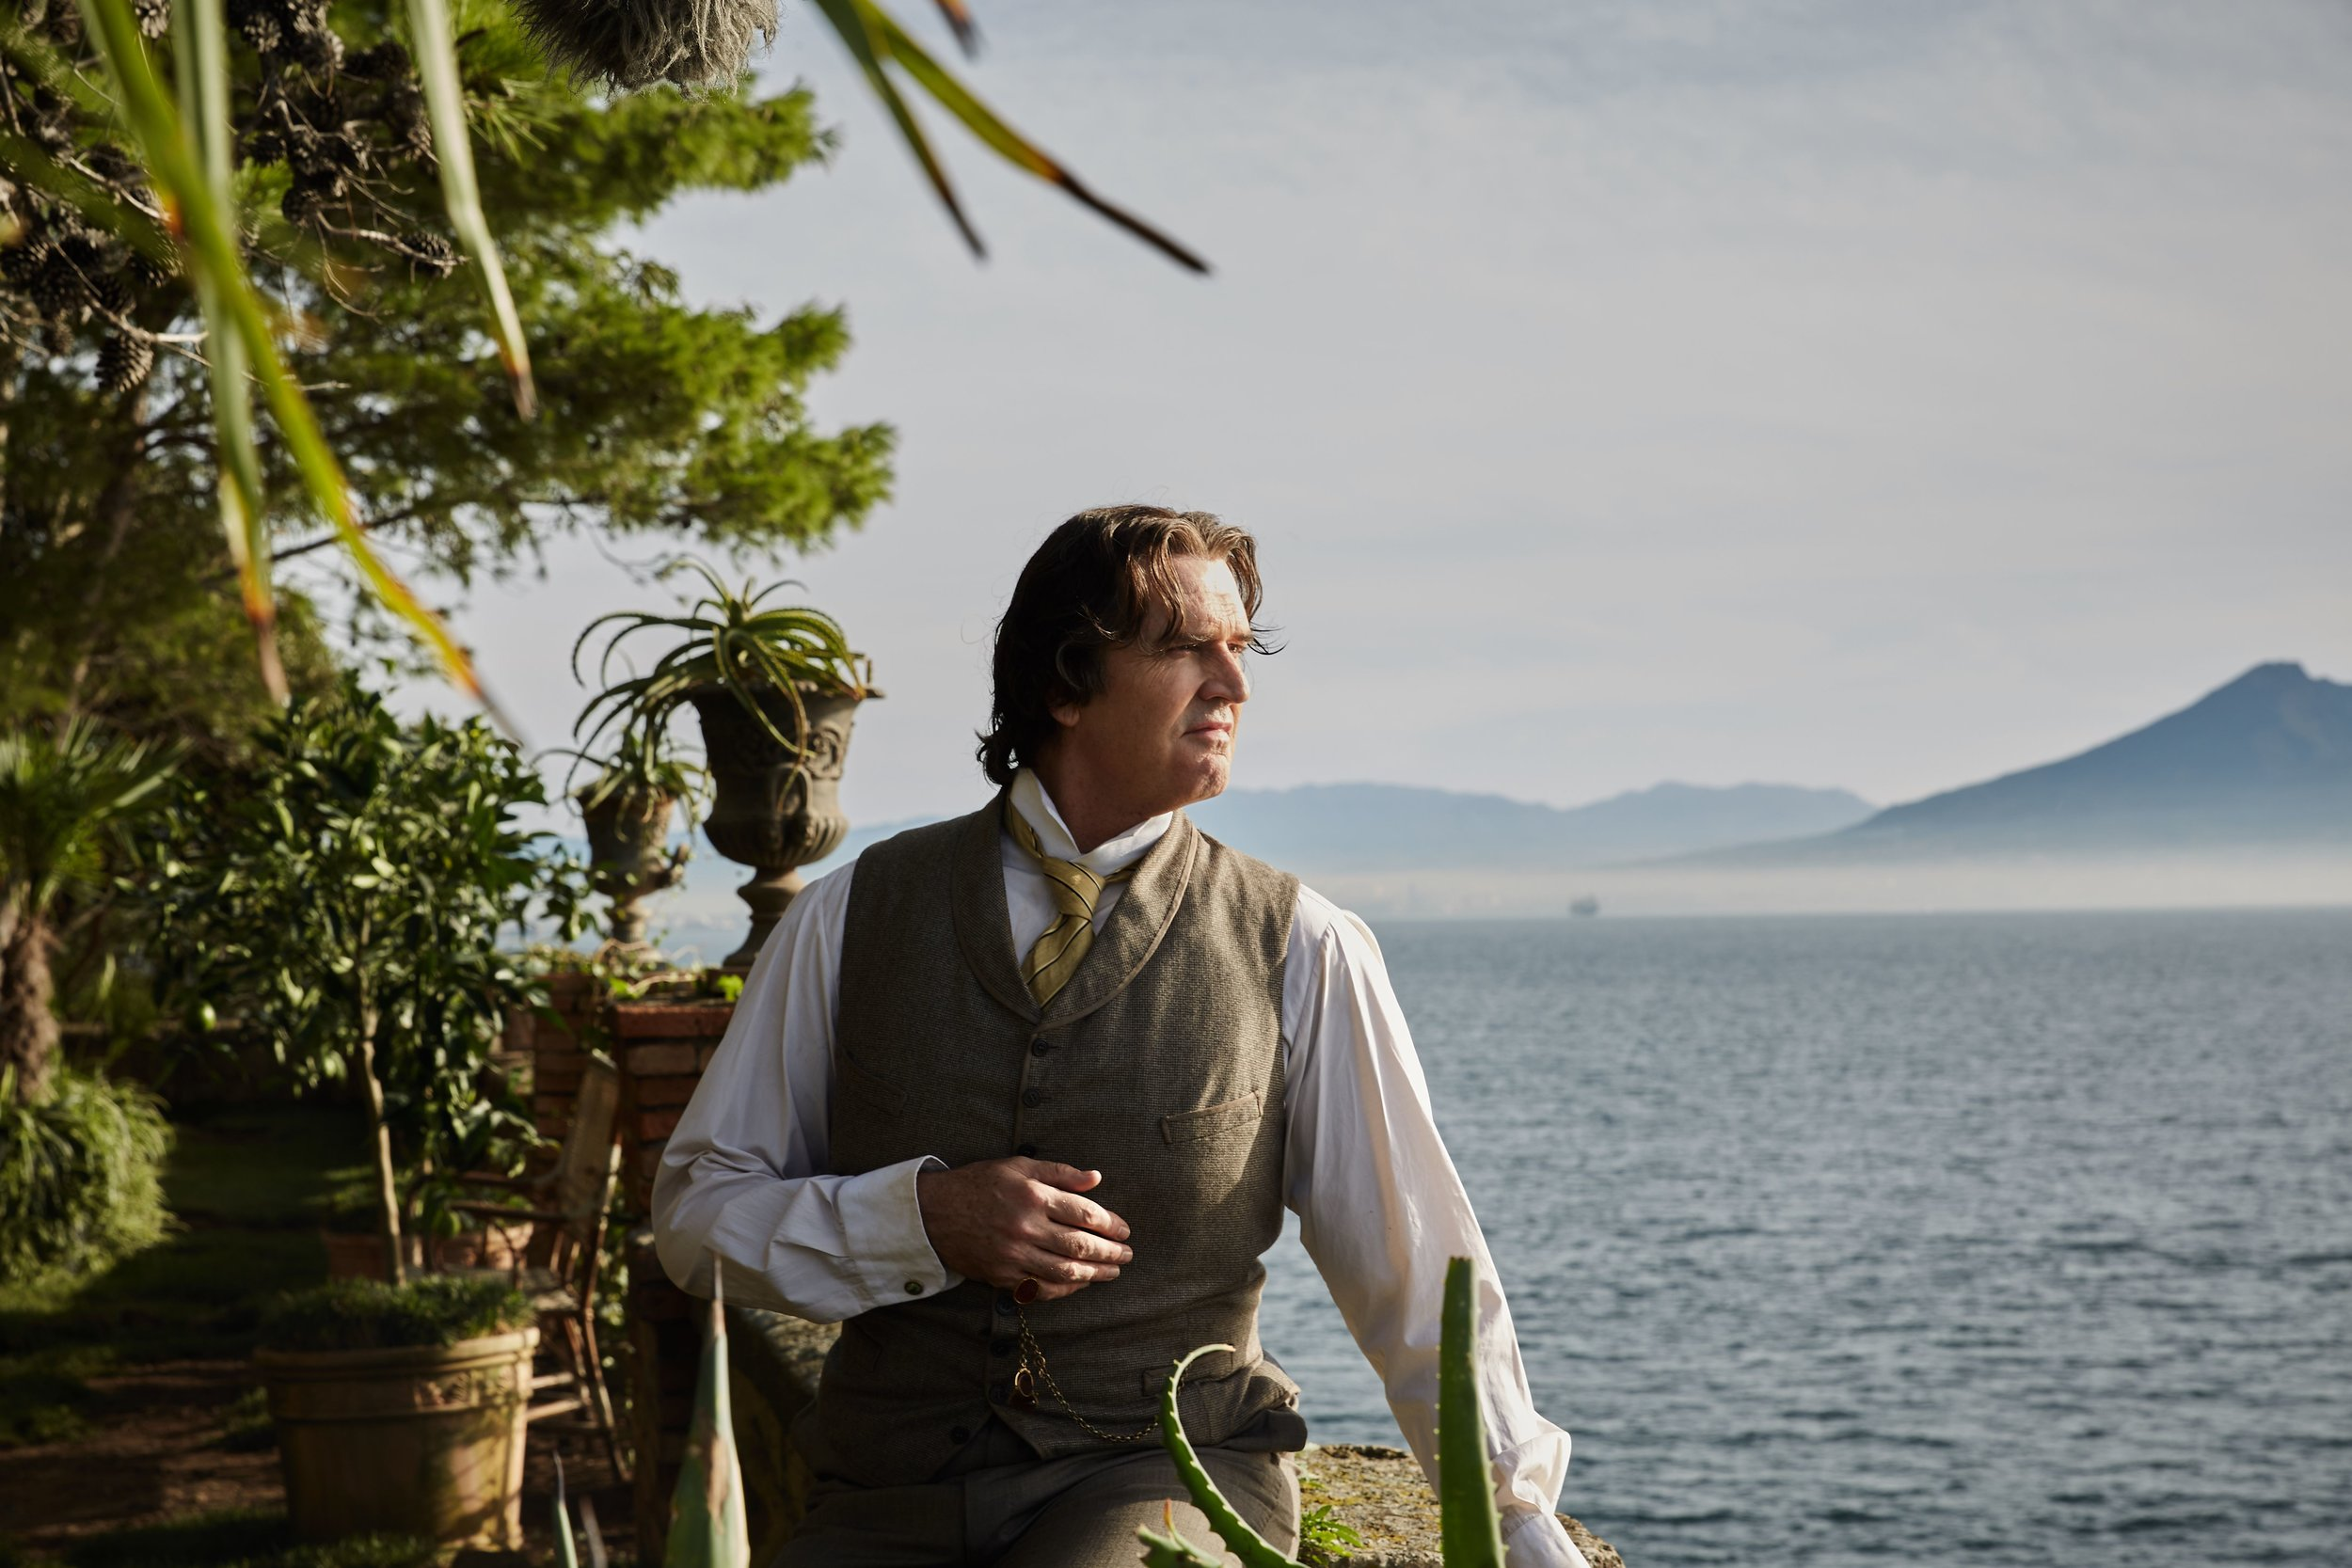 """Rupert Everett plays Oscar Wilde, in exile on the Mediterranean in his final years, in the drama """"The Happy Prince,"""" which Everett wrote and directed (Photo by Wilhelm Moser, courtesy Sony Pictures Classics)"""